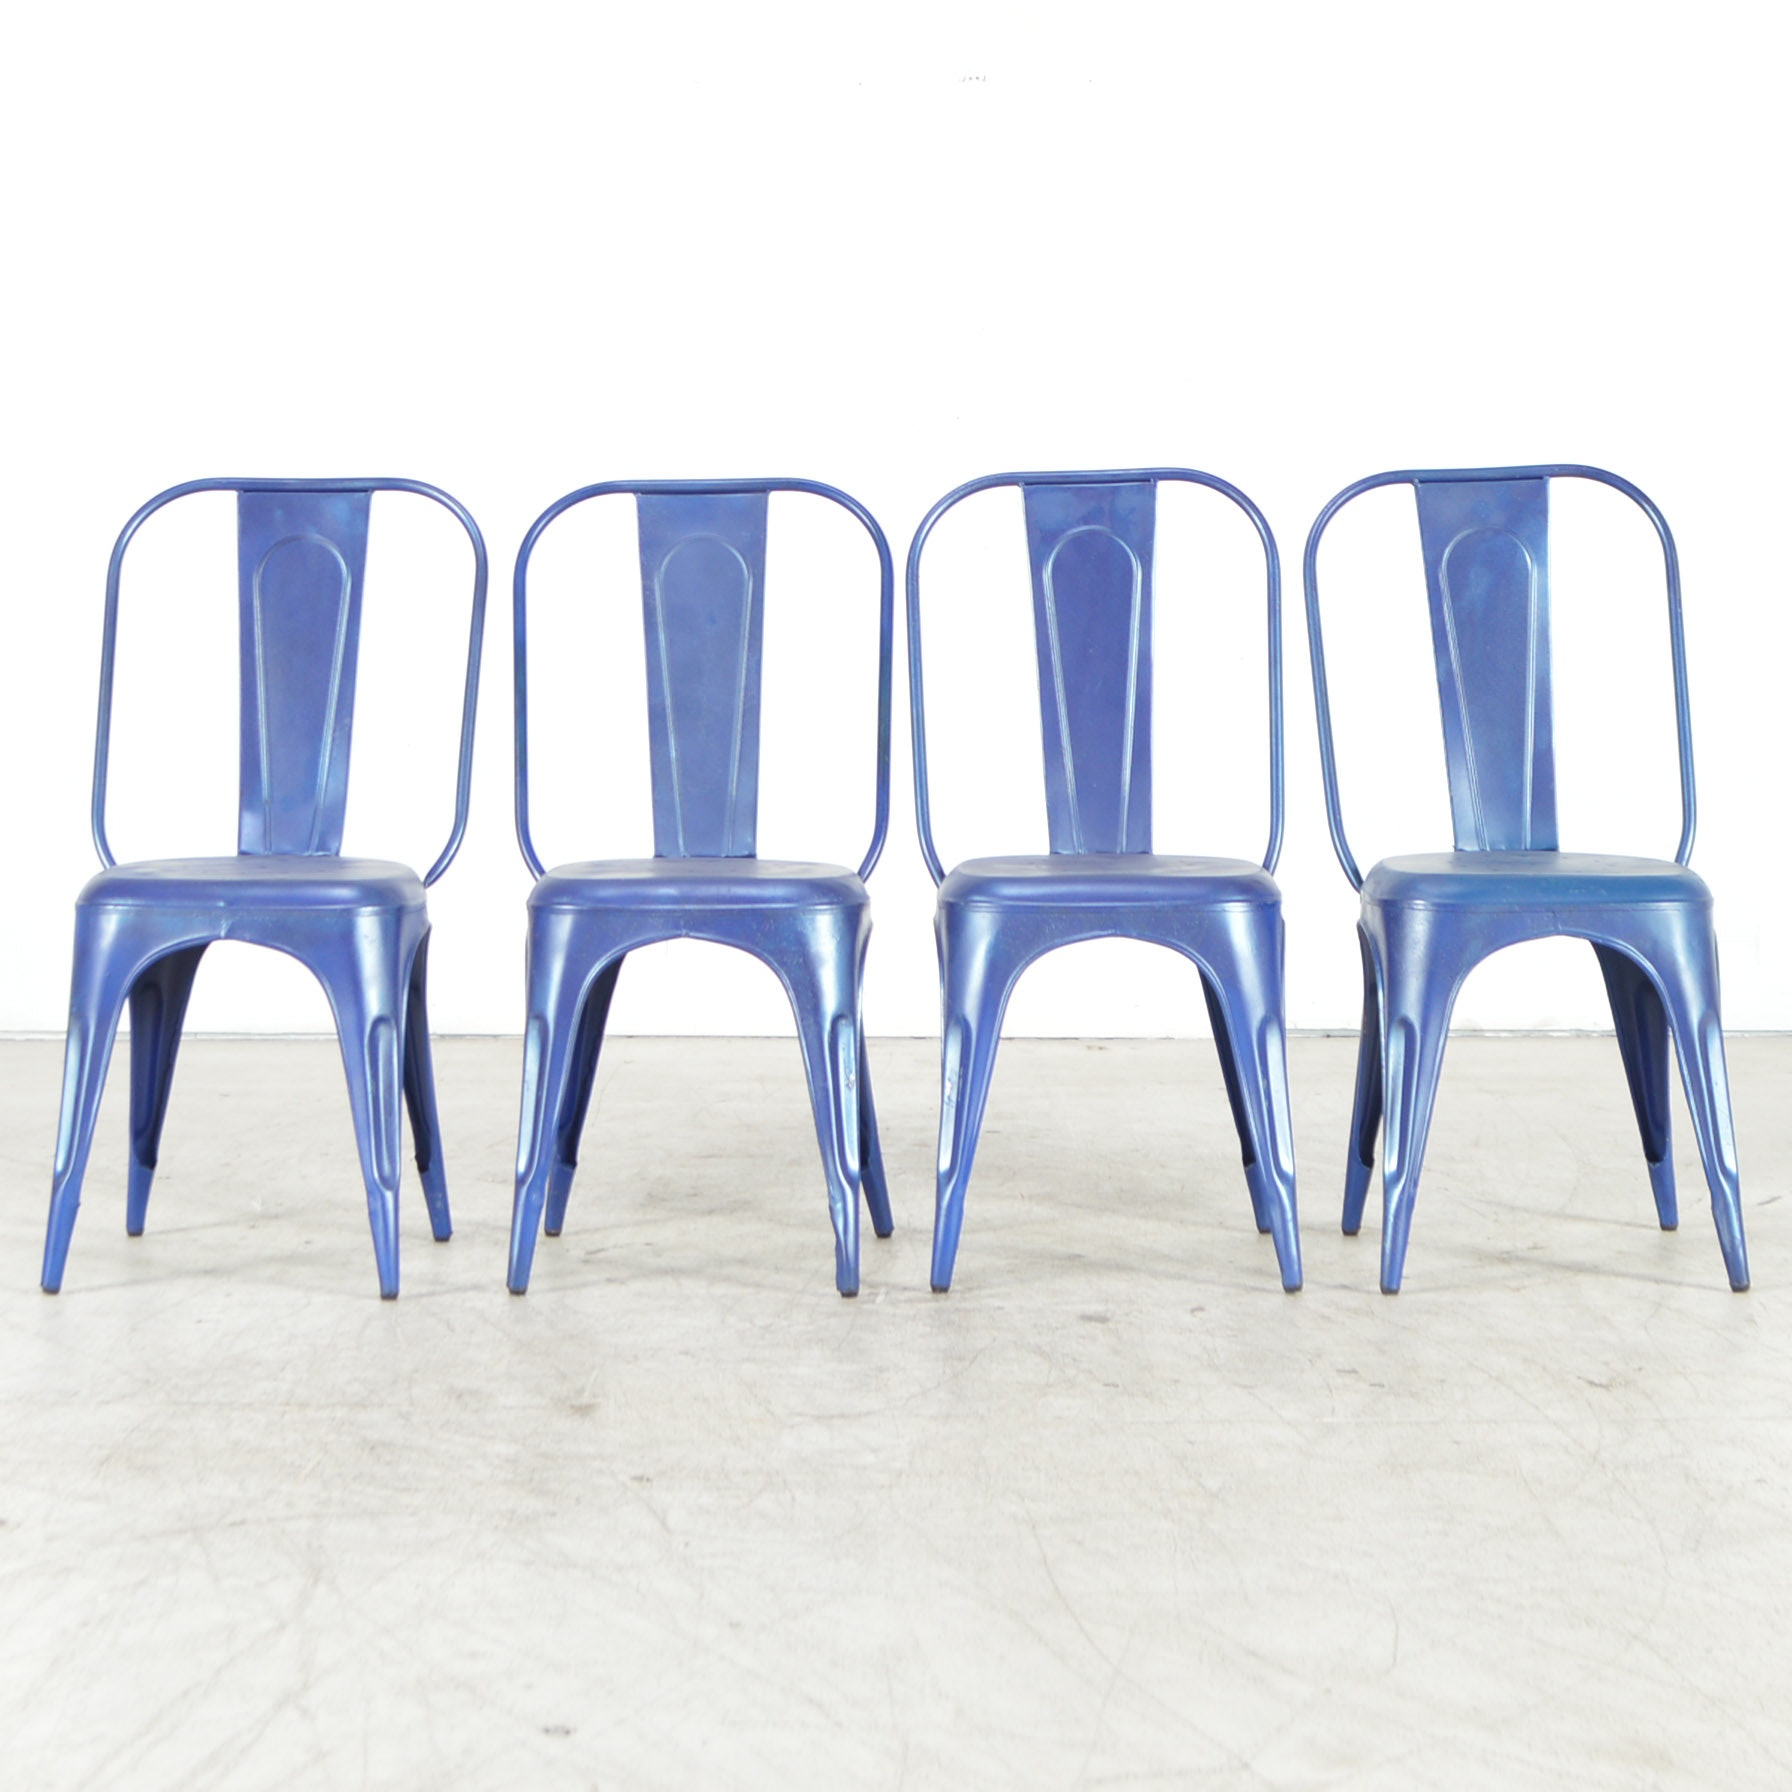 Blue Painted Aluminum Chairs